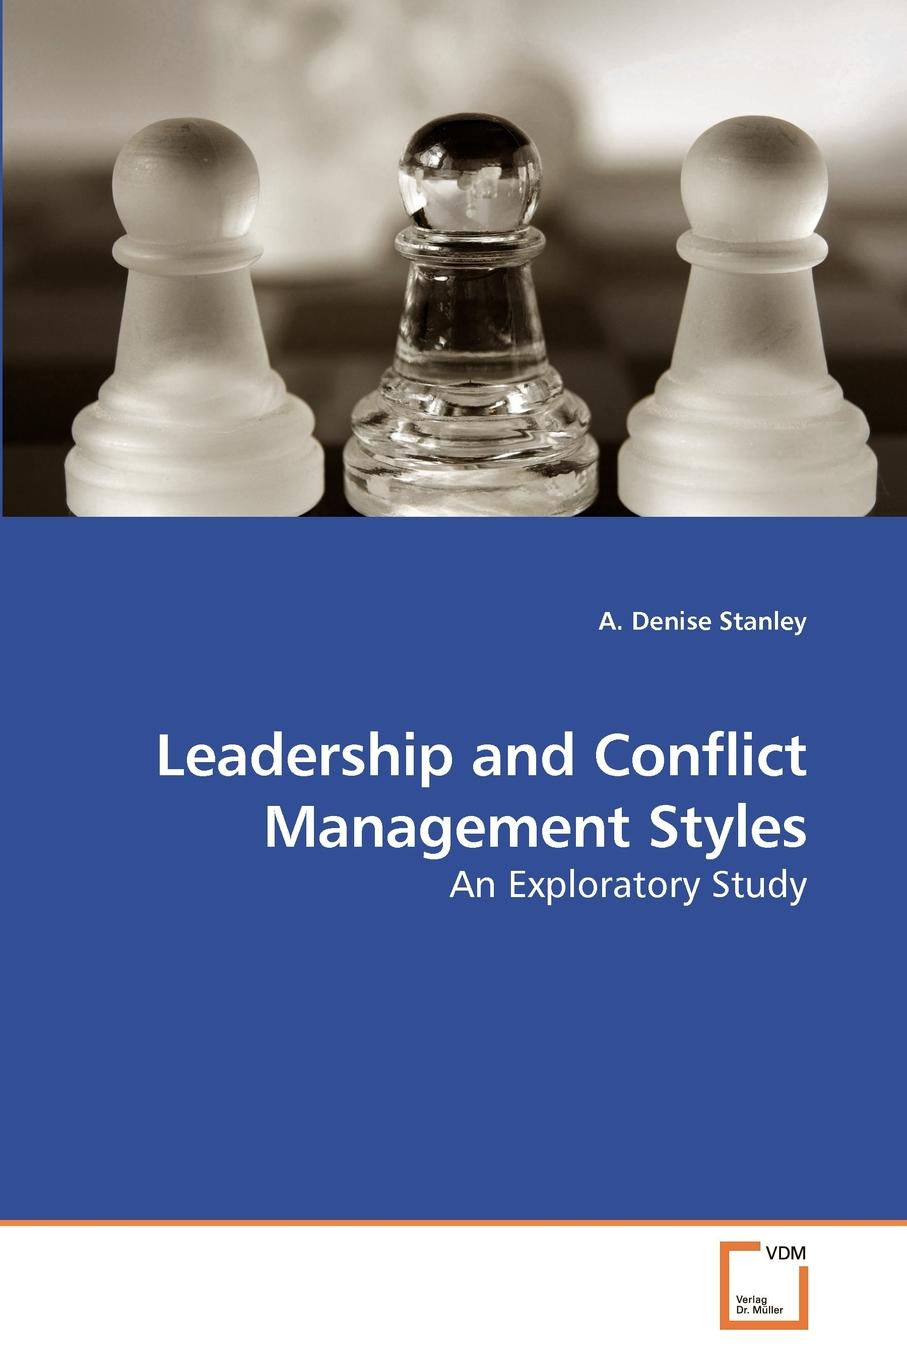 A. Denise Stanley Leadership and Conflict Management Styles d e berlyne conflict arousal and curiosity